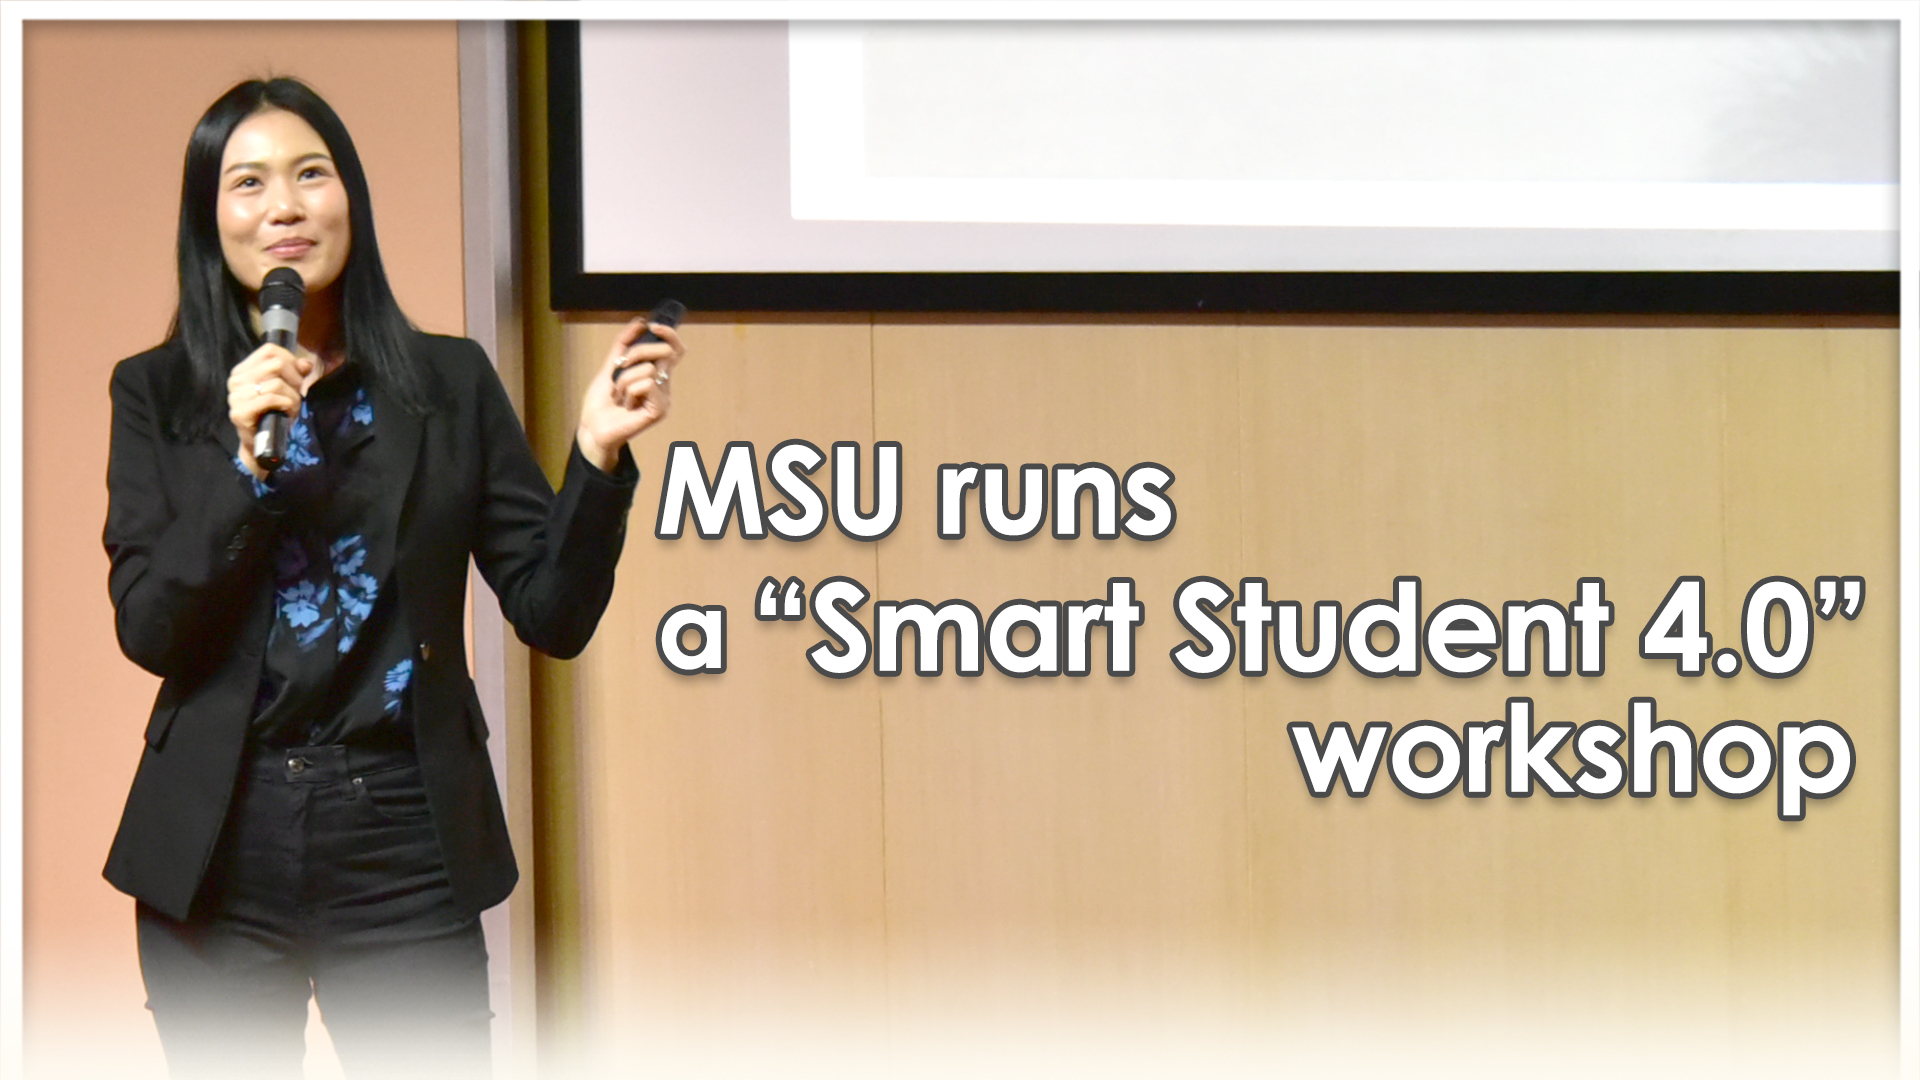 "MSU runs a ""Smart Student 4.0"" workshop."